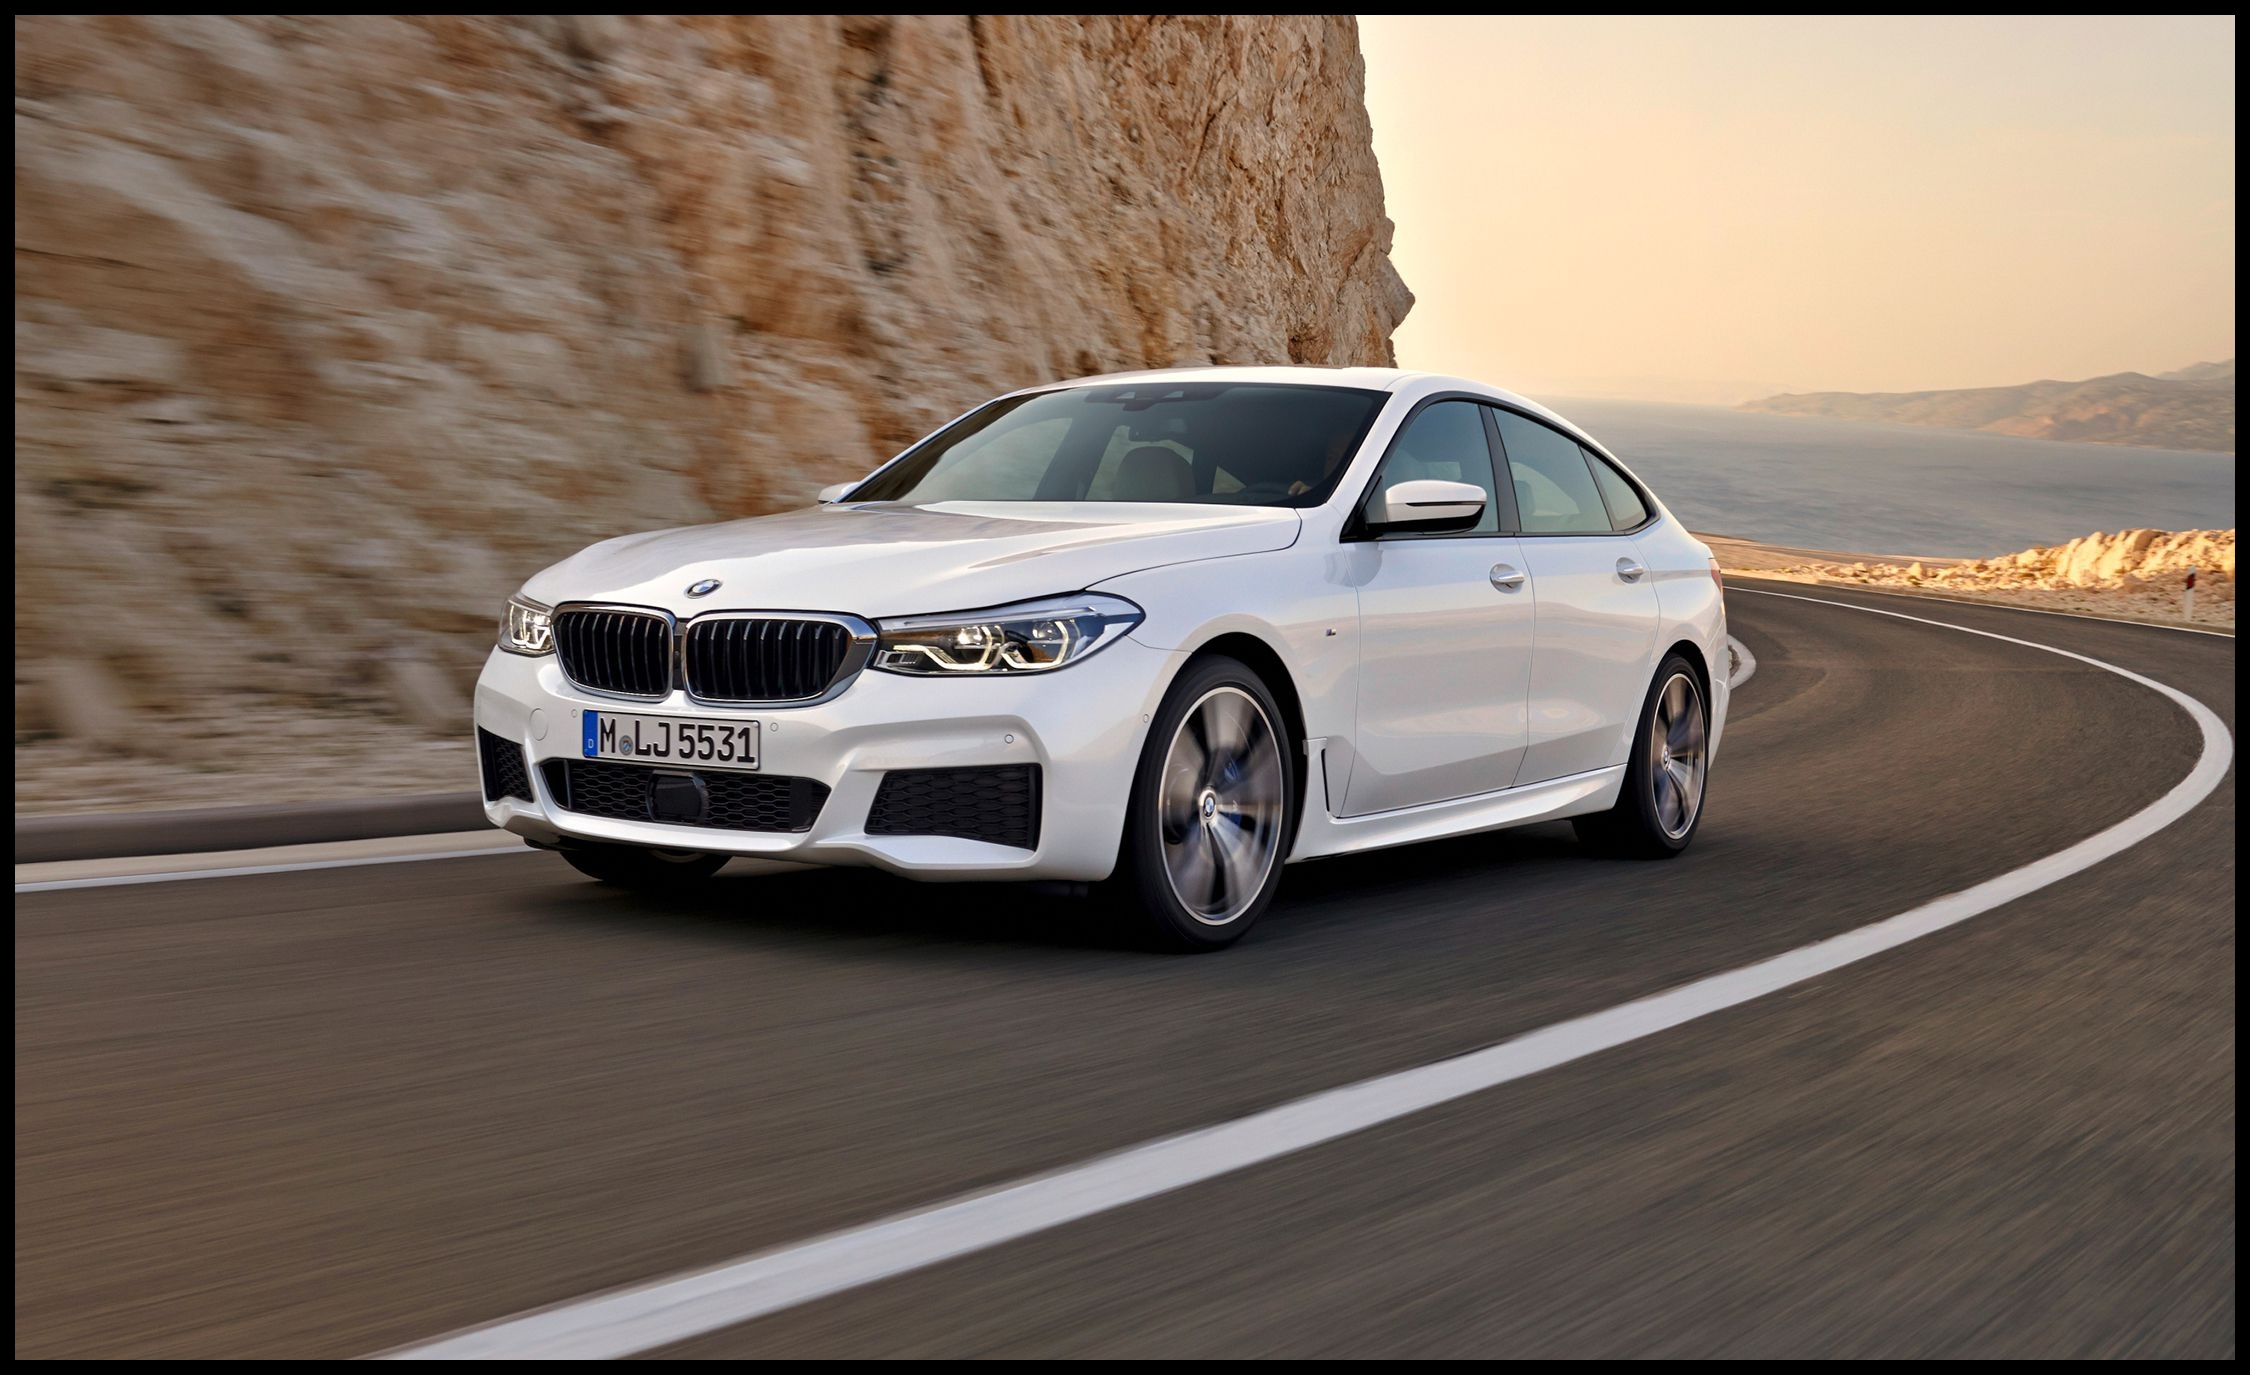 2018 Bmw 6 Series Convertible Prices Reviews and 2018 Bmw 6 Series Gran Turismo